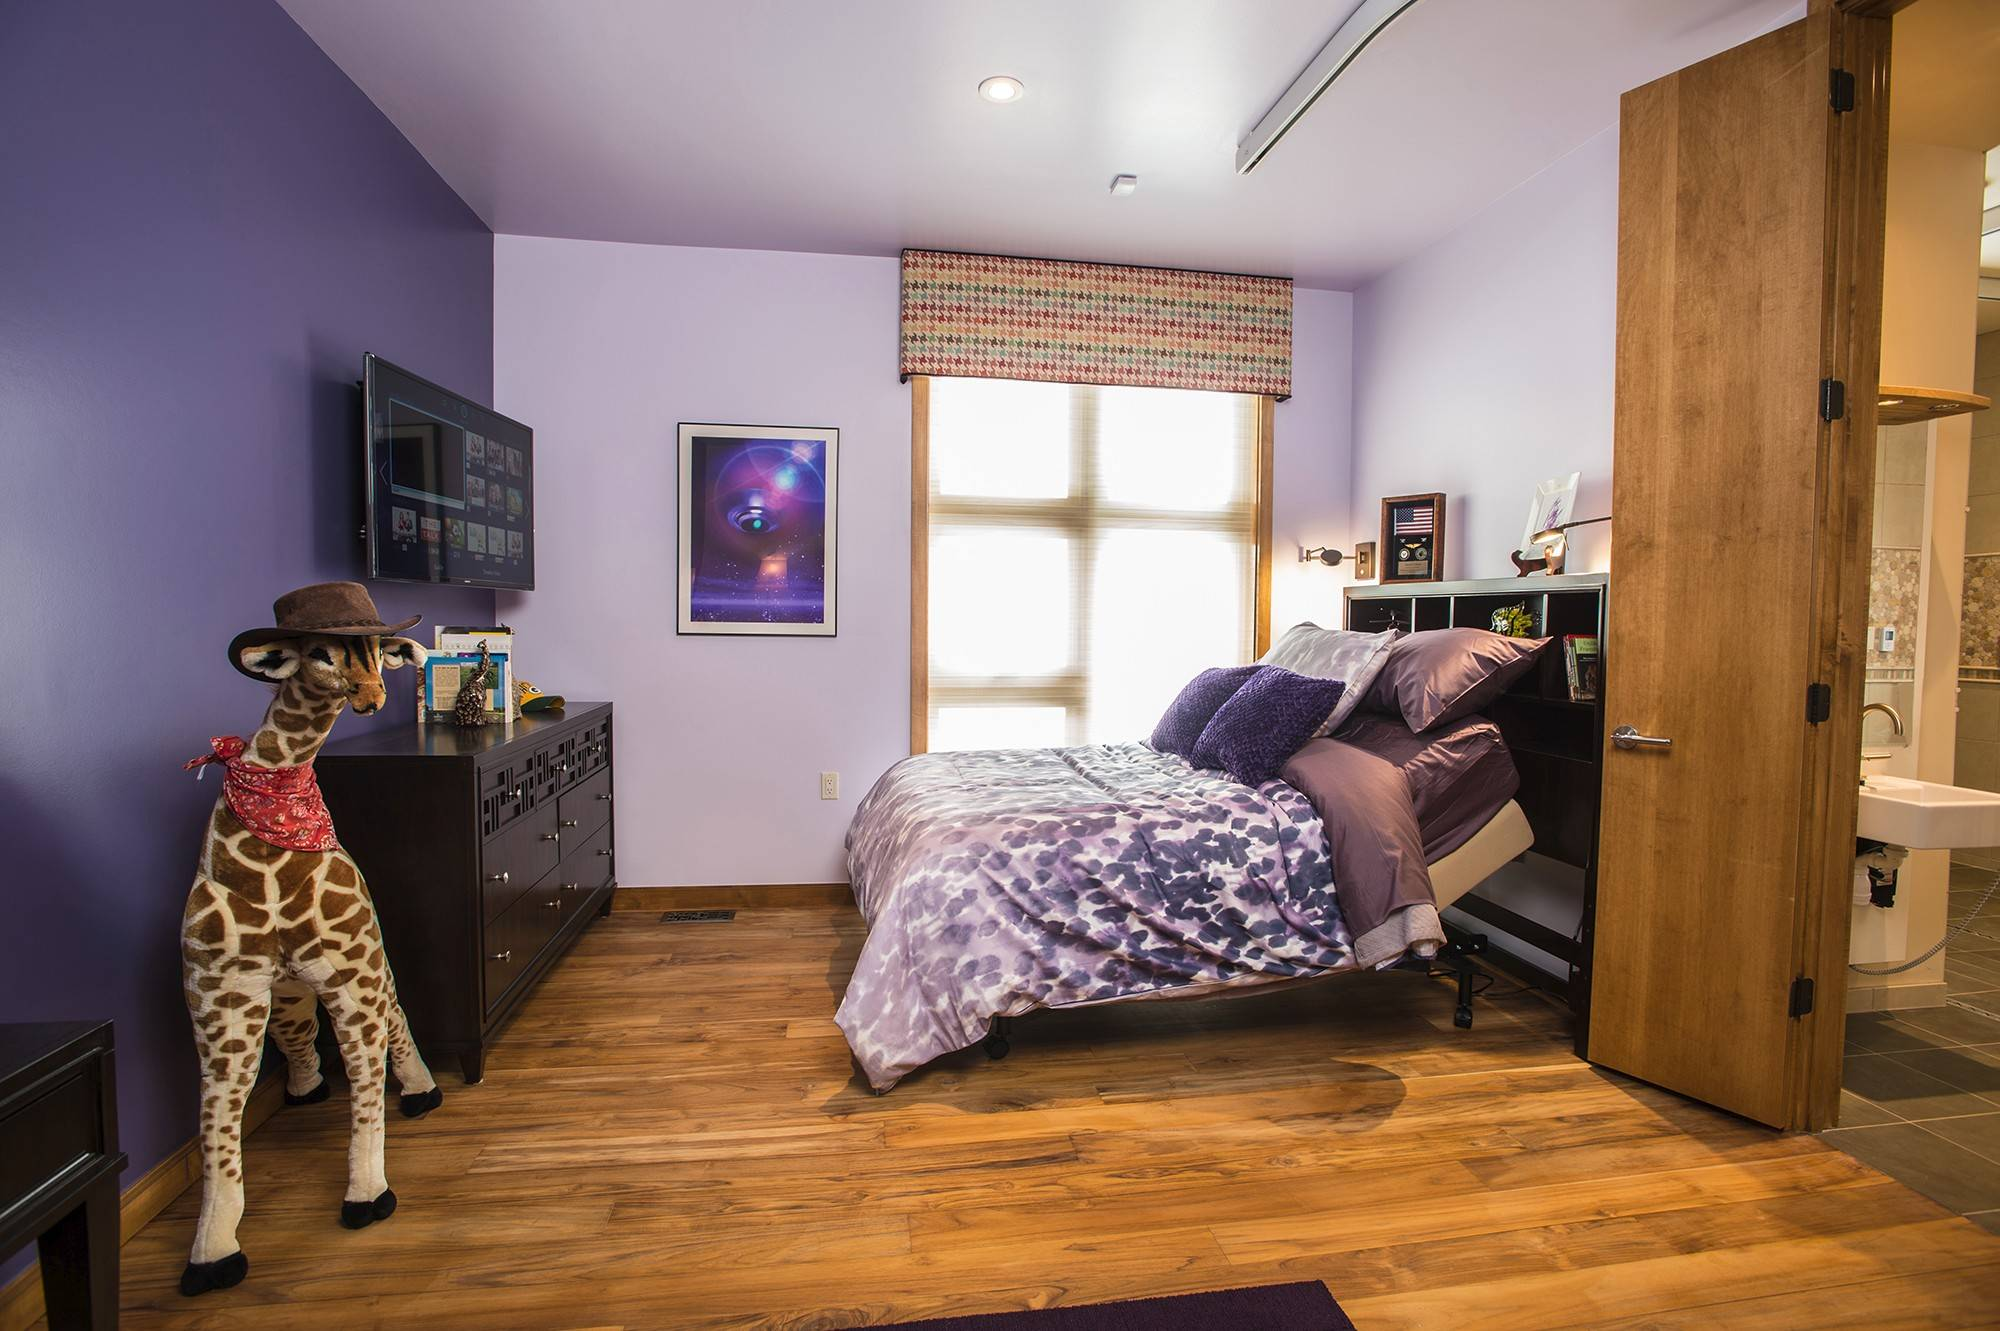 David's bedroom features a purple color scheme and a giraffe motif; the boys' bedrooms have a track system so they can move from bedroom to bath and vanity.